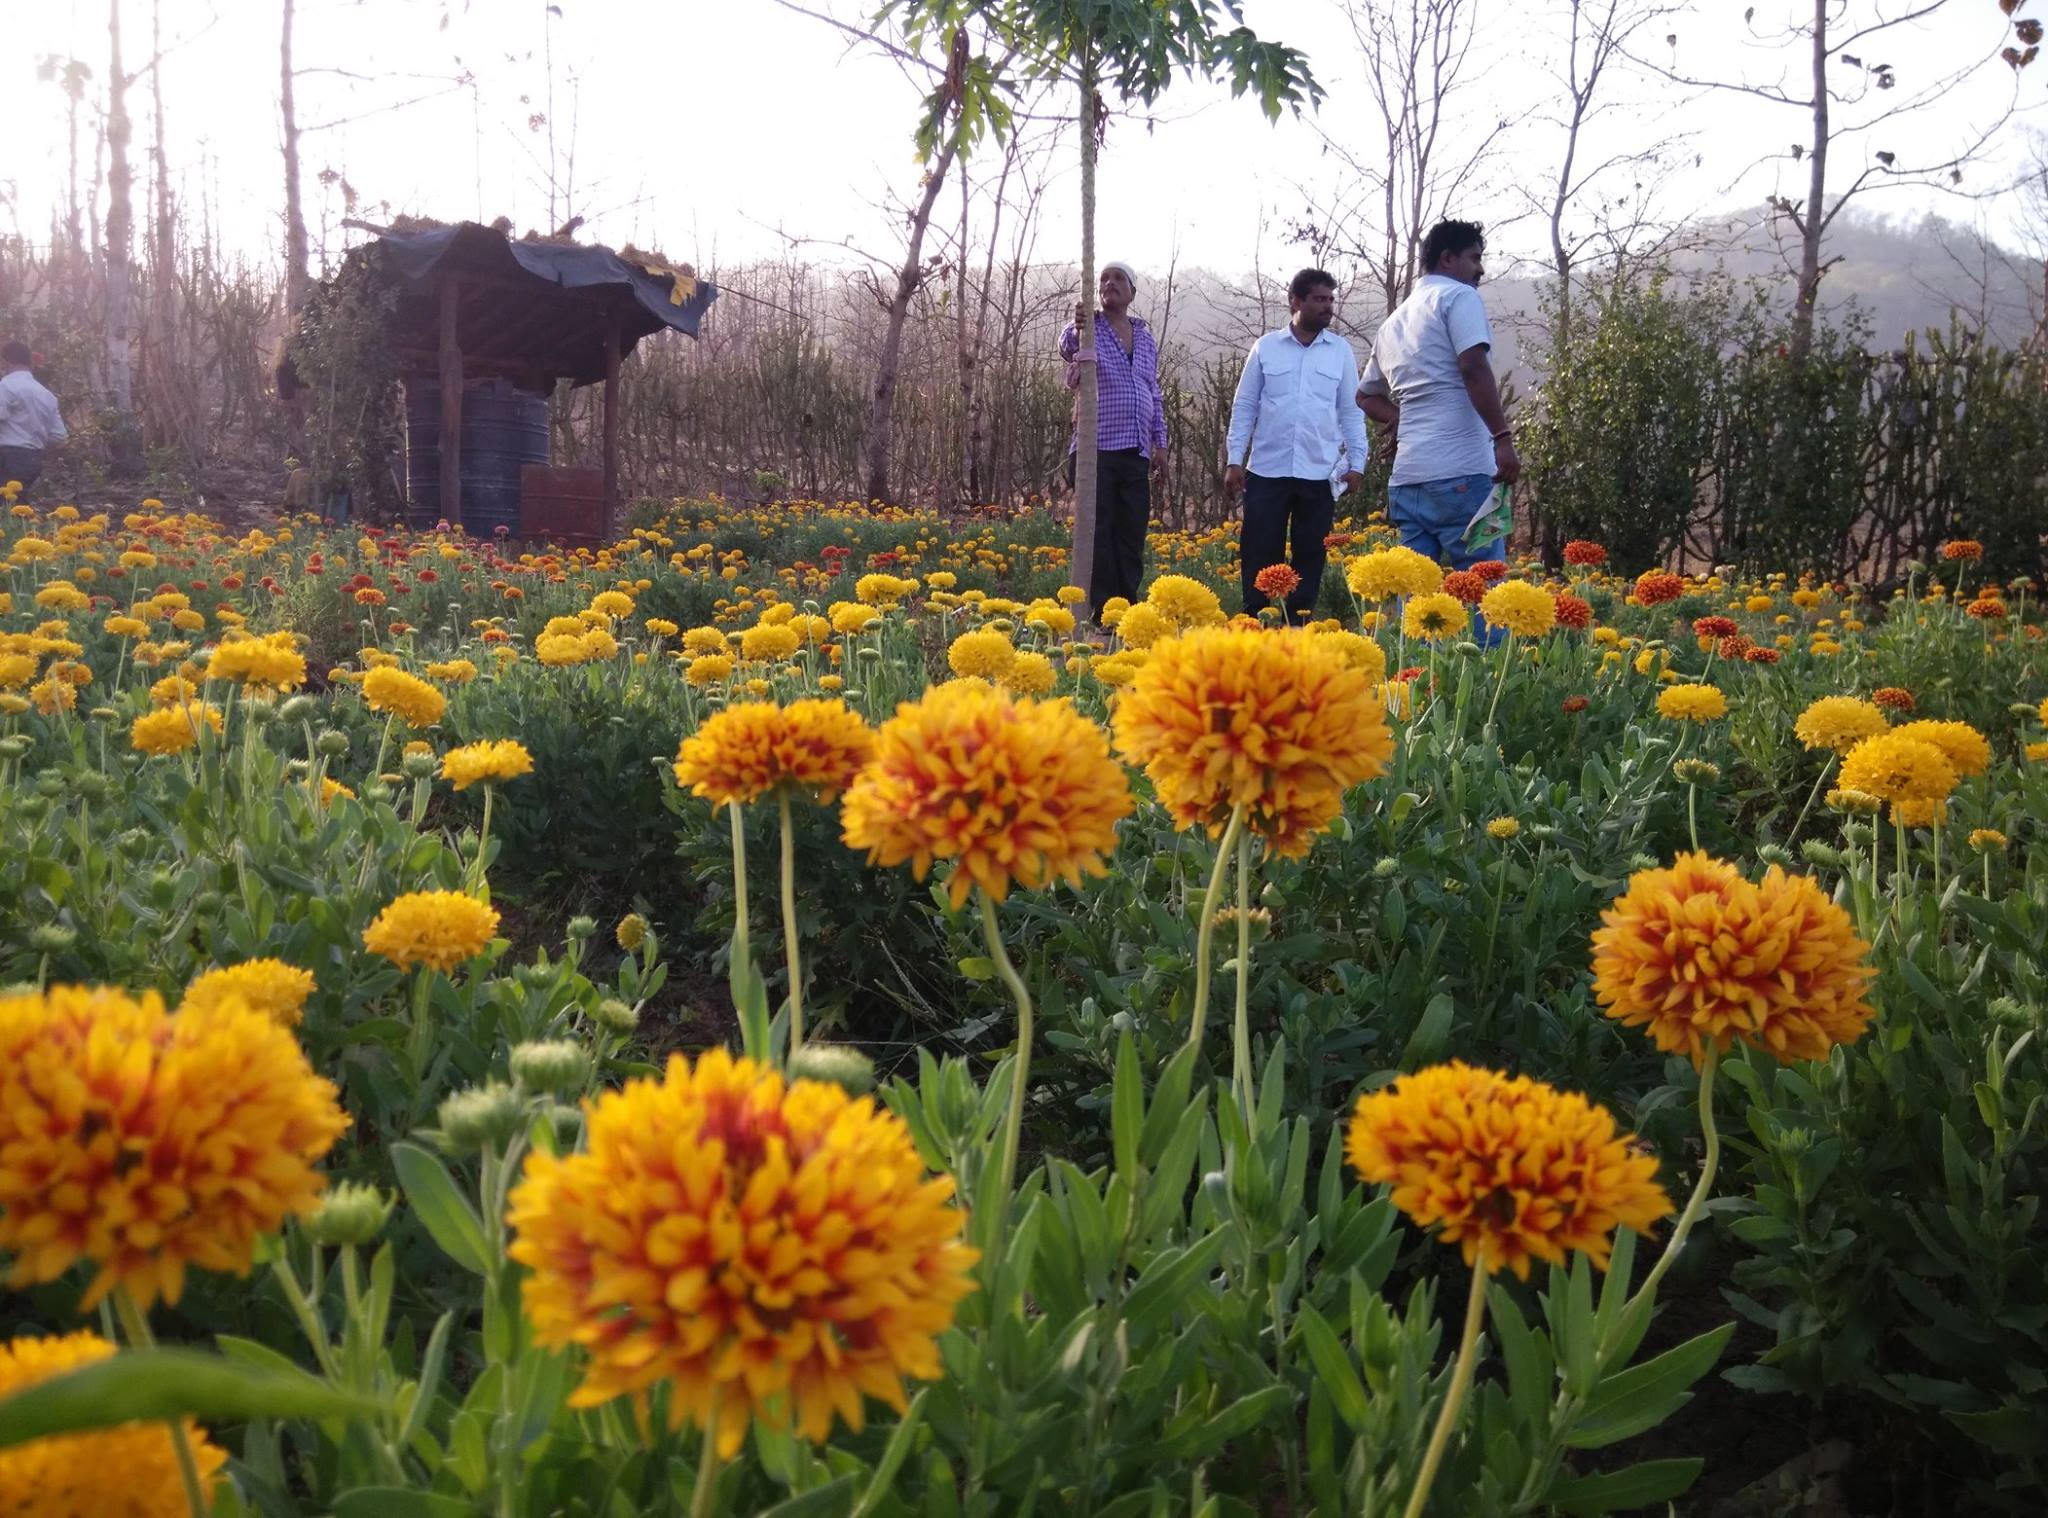 Field of Marigolds from the ADIV Pure Nature organic farm.